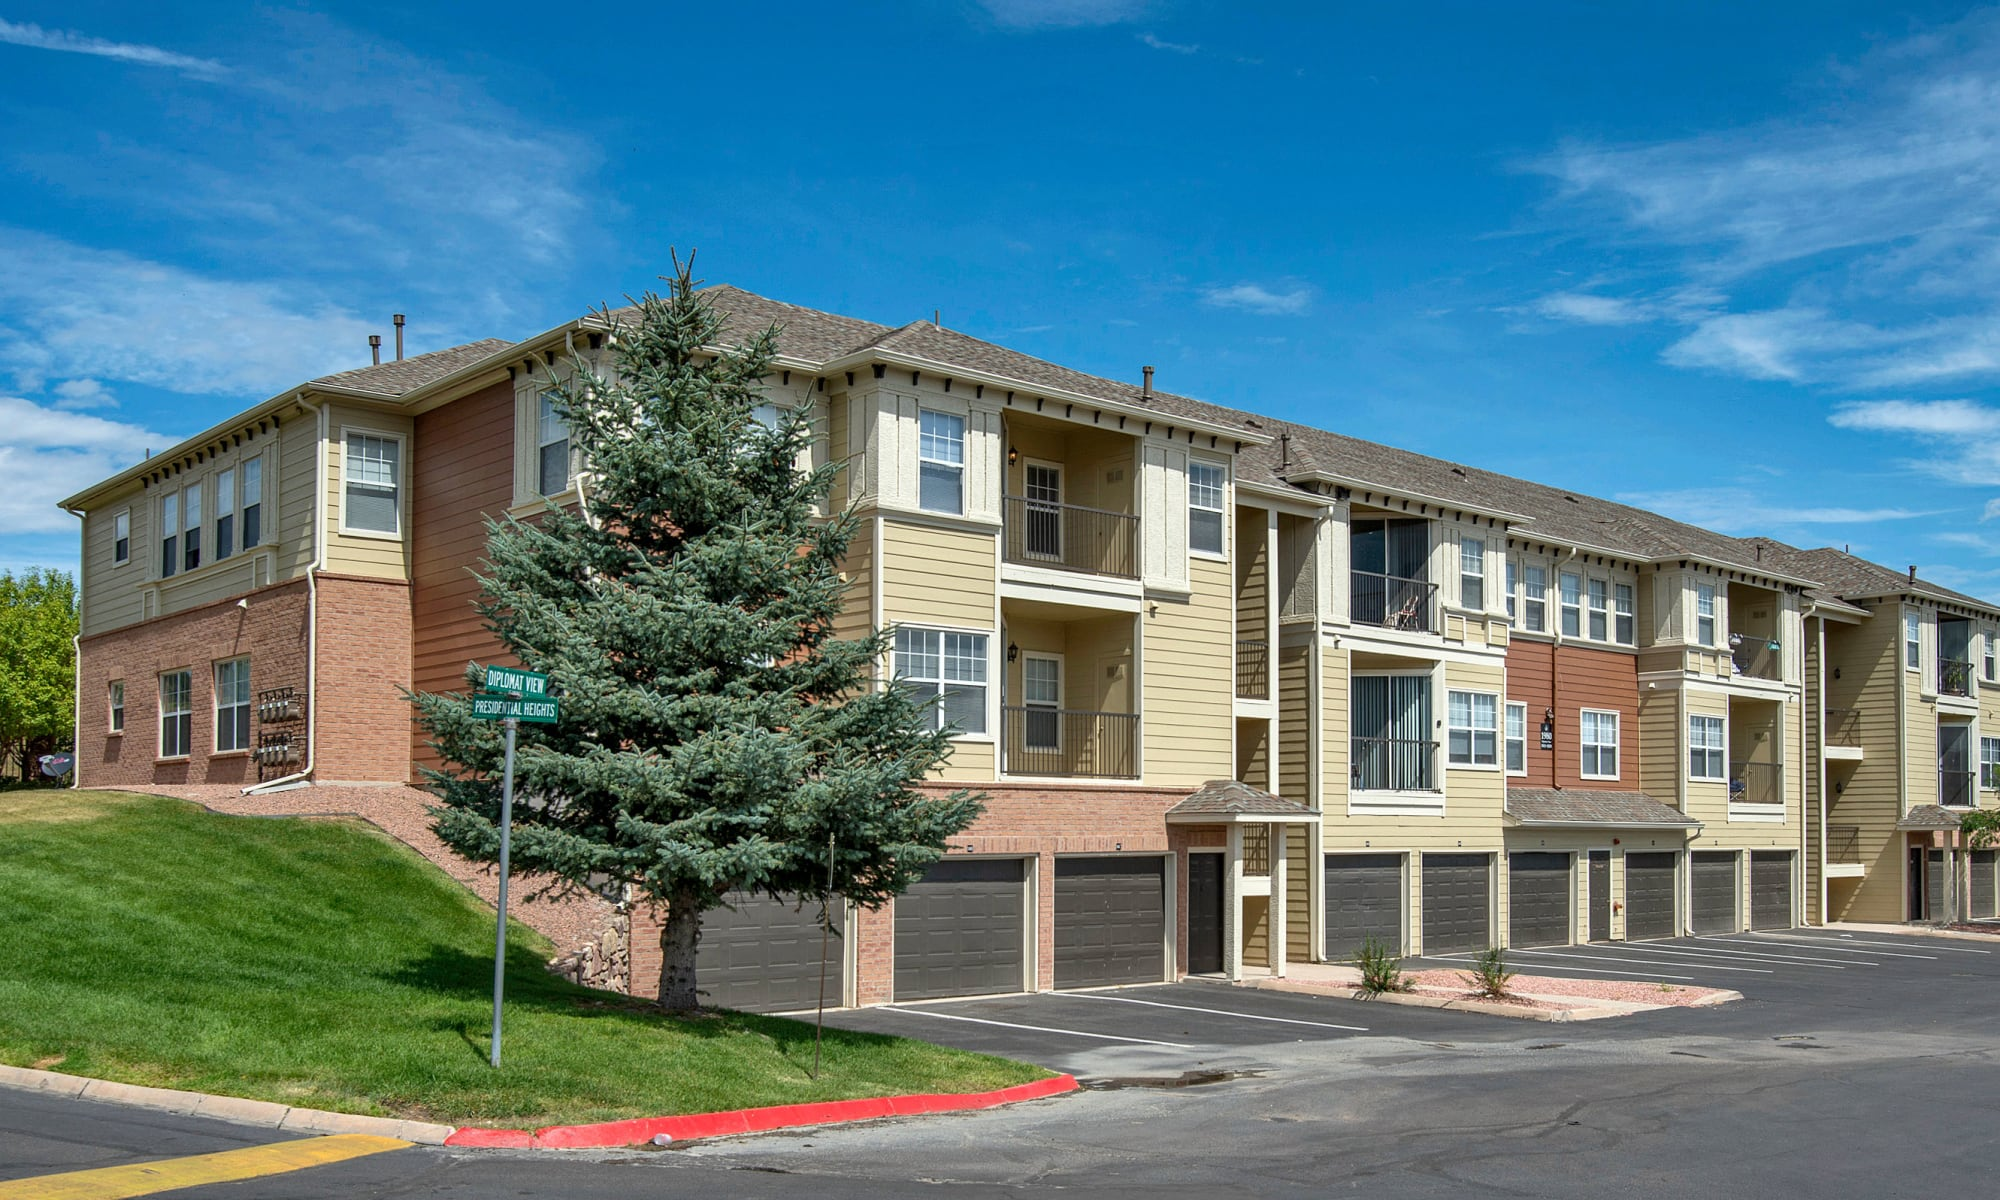 Colorado springs apartments retreat at cheyenne mountain apartments for One bedroom apartments colorado springs